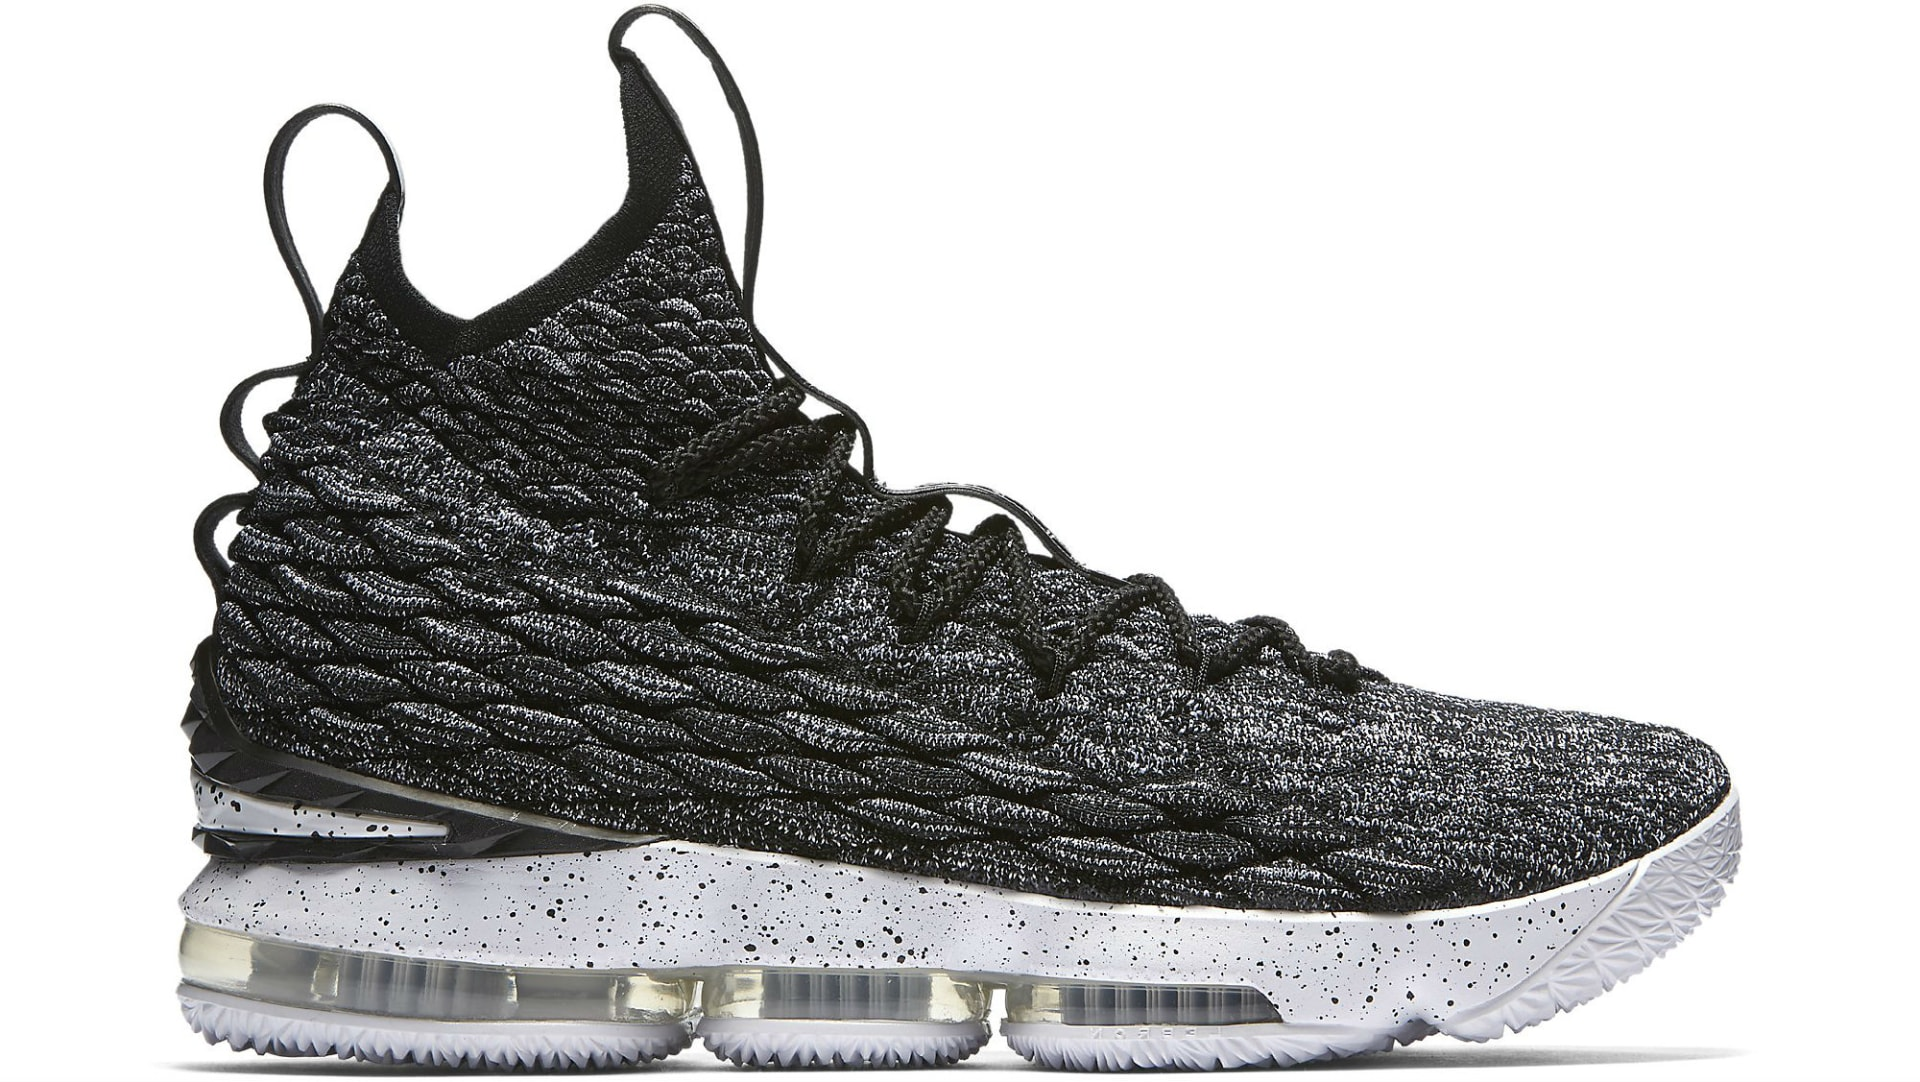 Nike LeBron 15 Ashes Release Date 897648-002